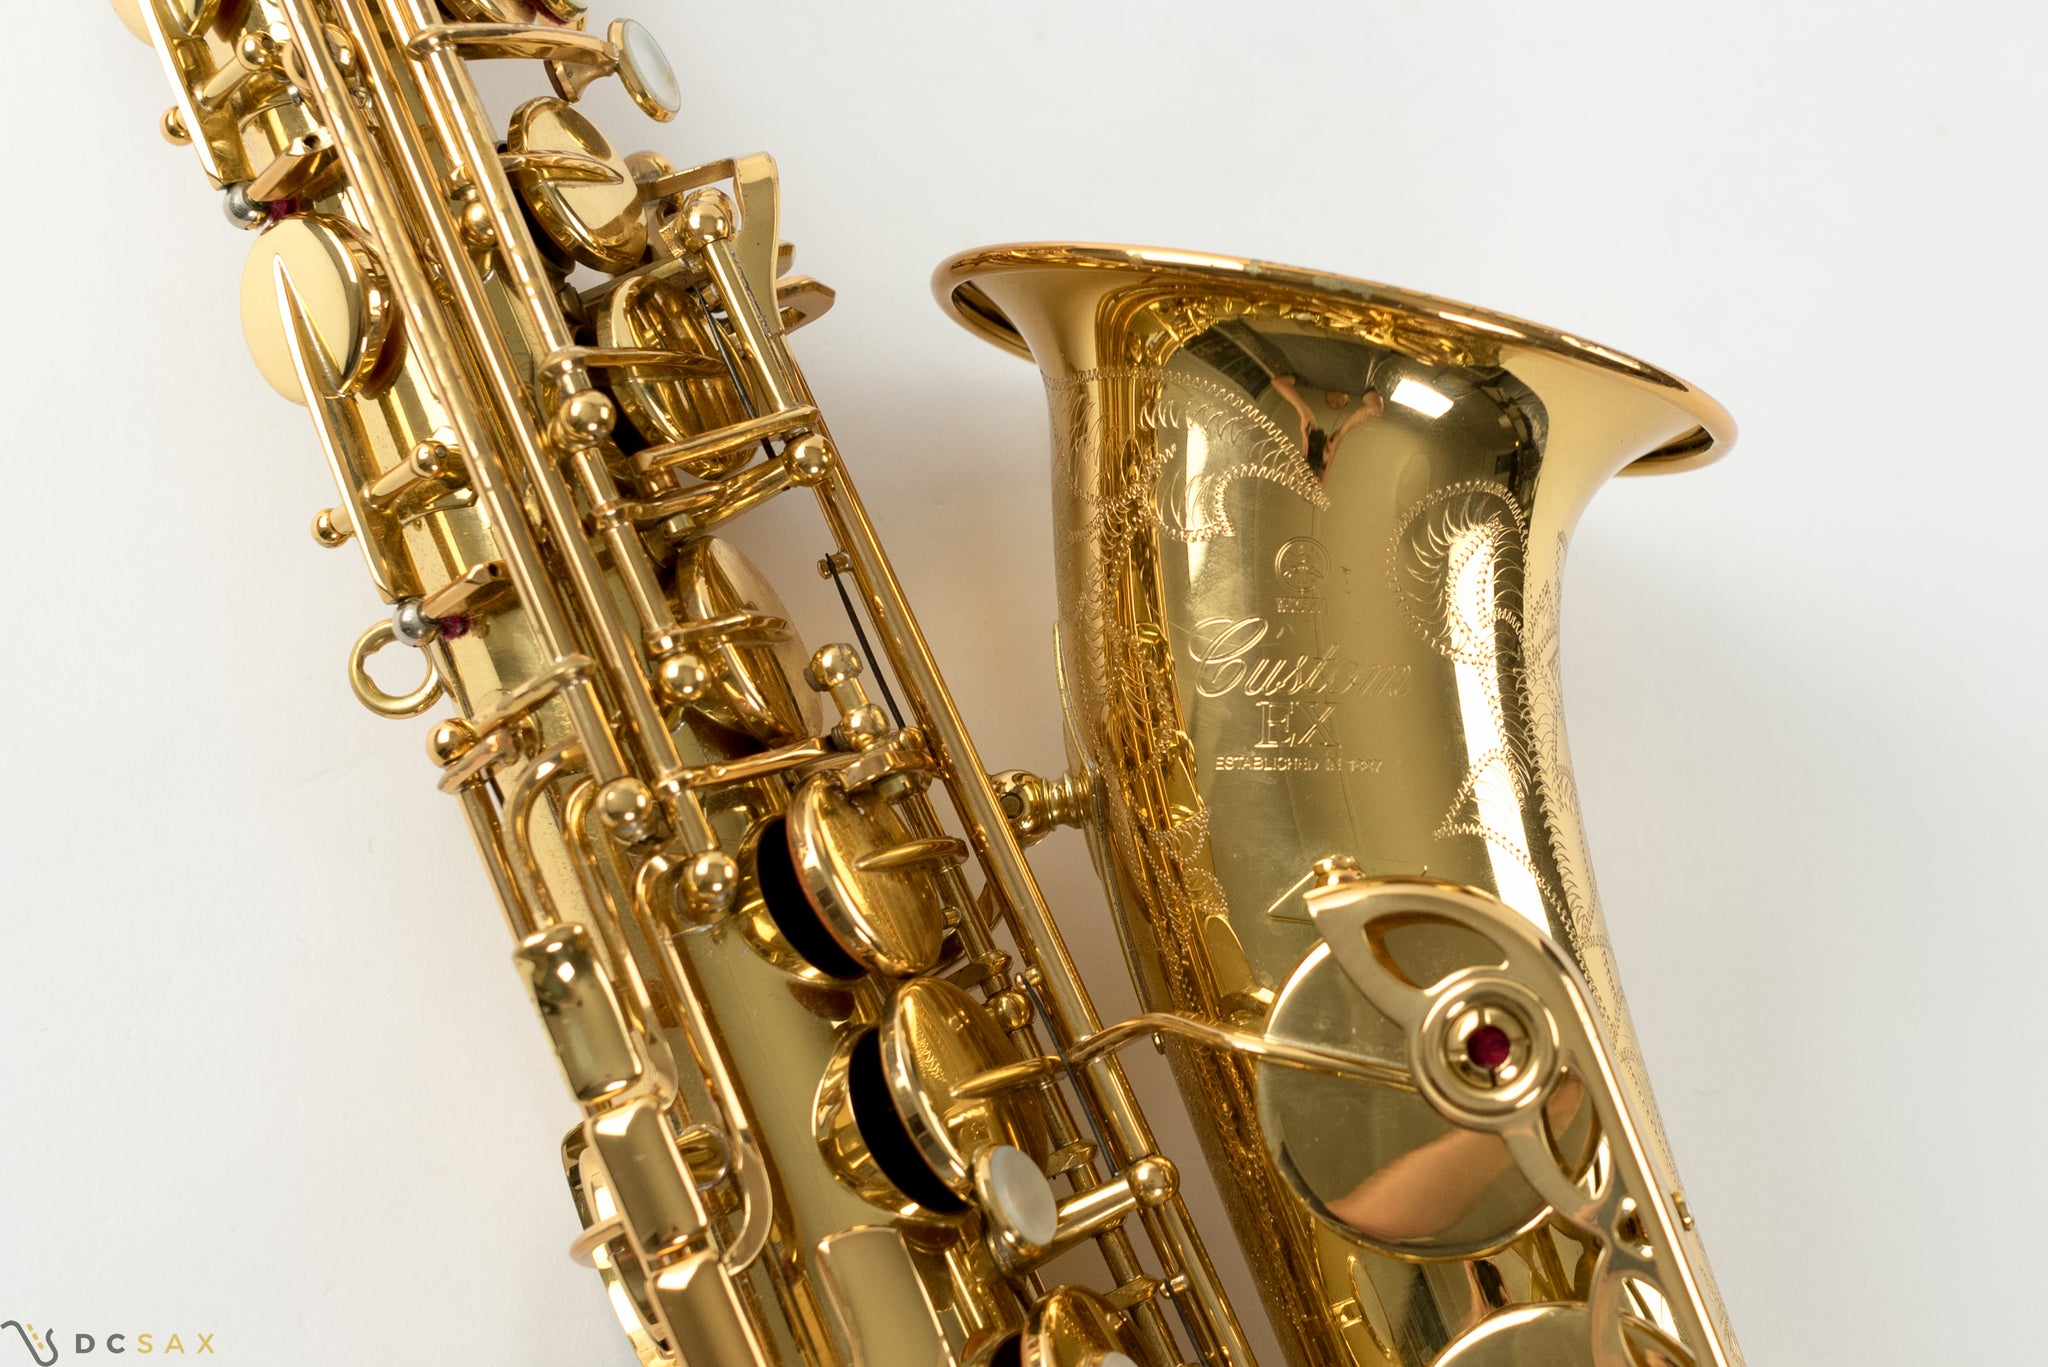 Yamaha Custom 875EX Alto Saxophone, V1 Neck, Just Serviced